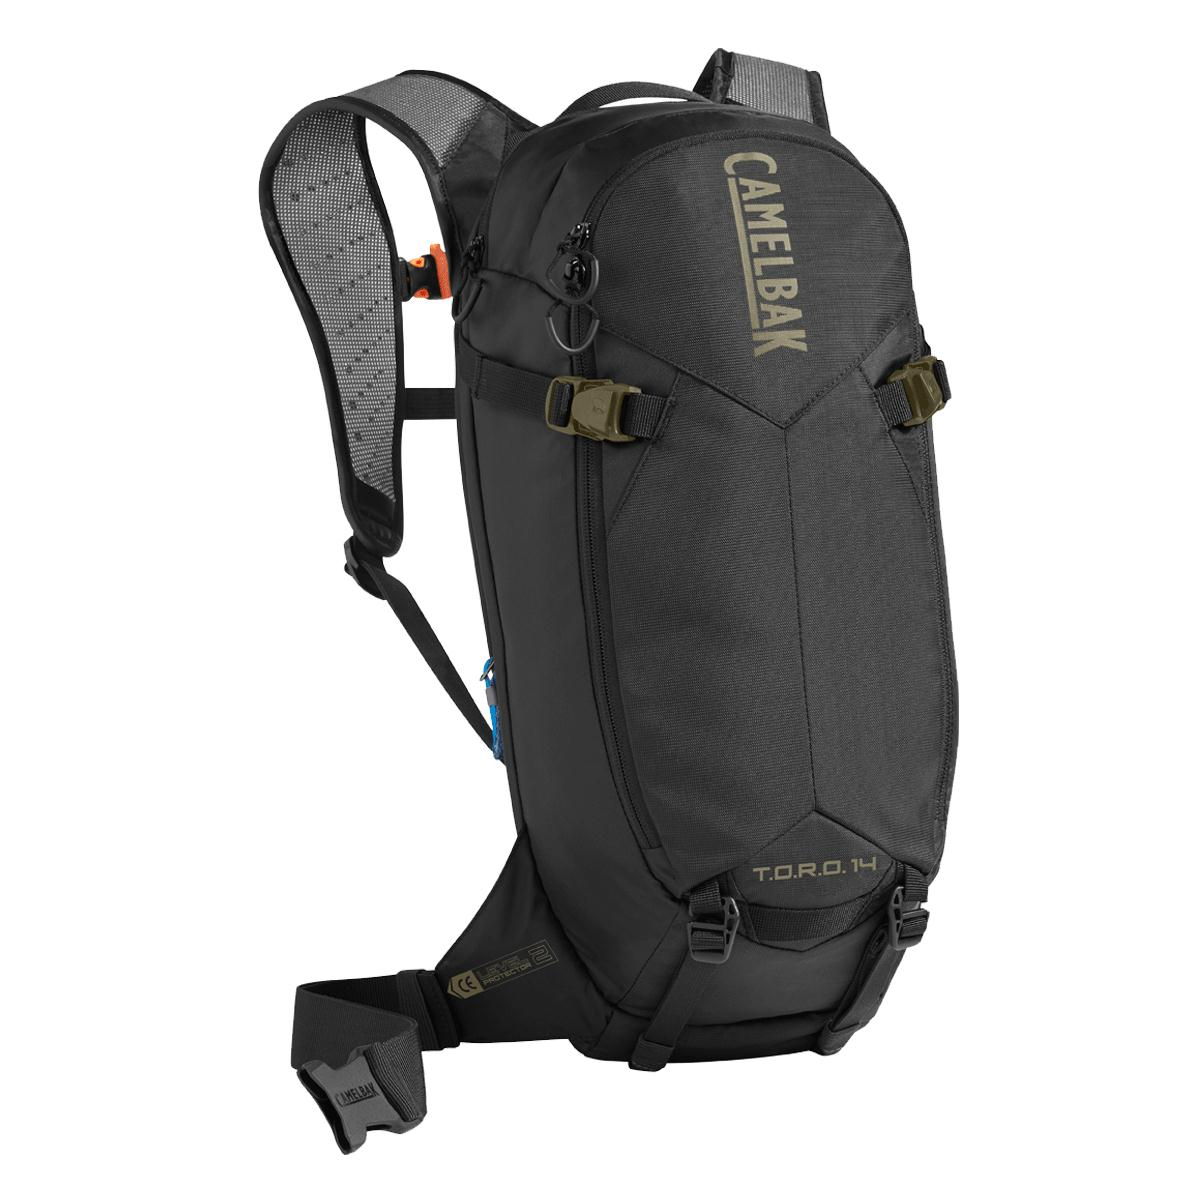 Camelbak T.O.R.O. Protector 14 - Dry | Amour